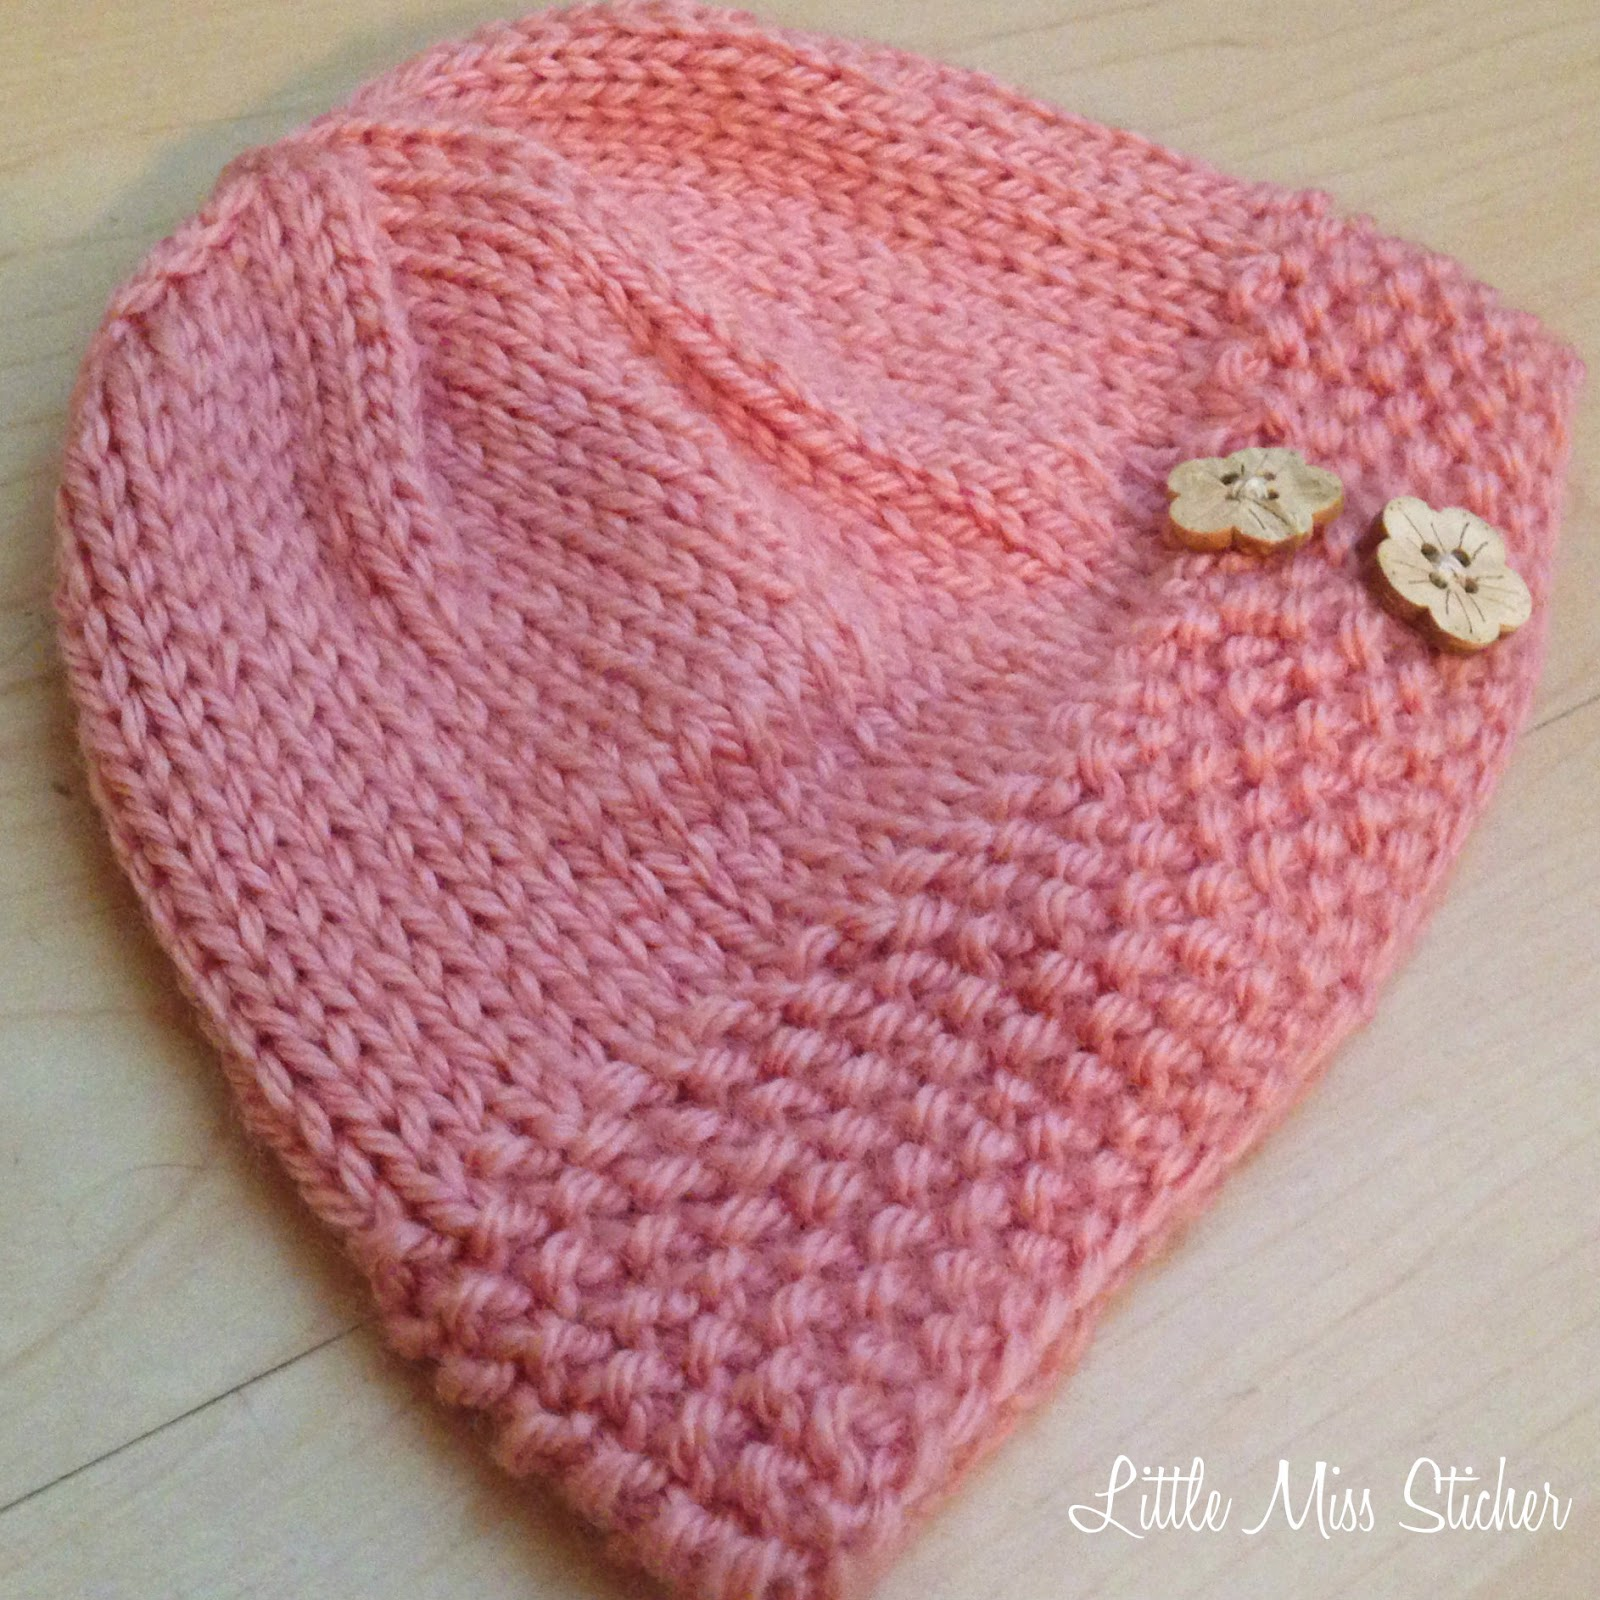 Baby Beanie Knit Pattern : Little Miss Stitcher: Bitty Beanie Free Knit Pattern